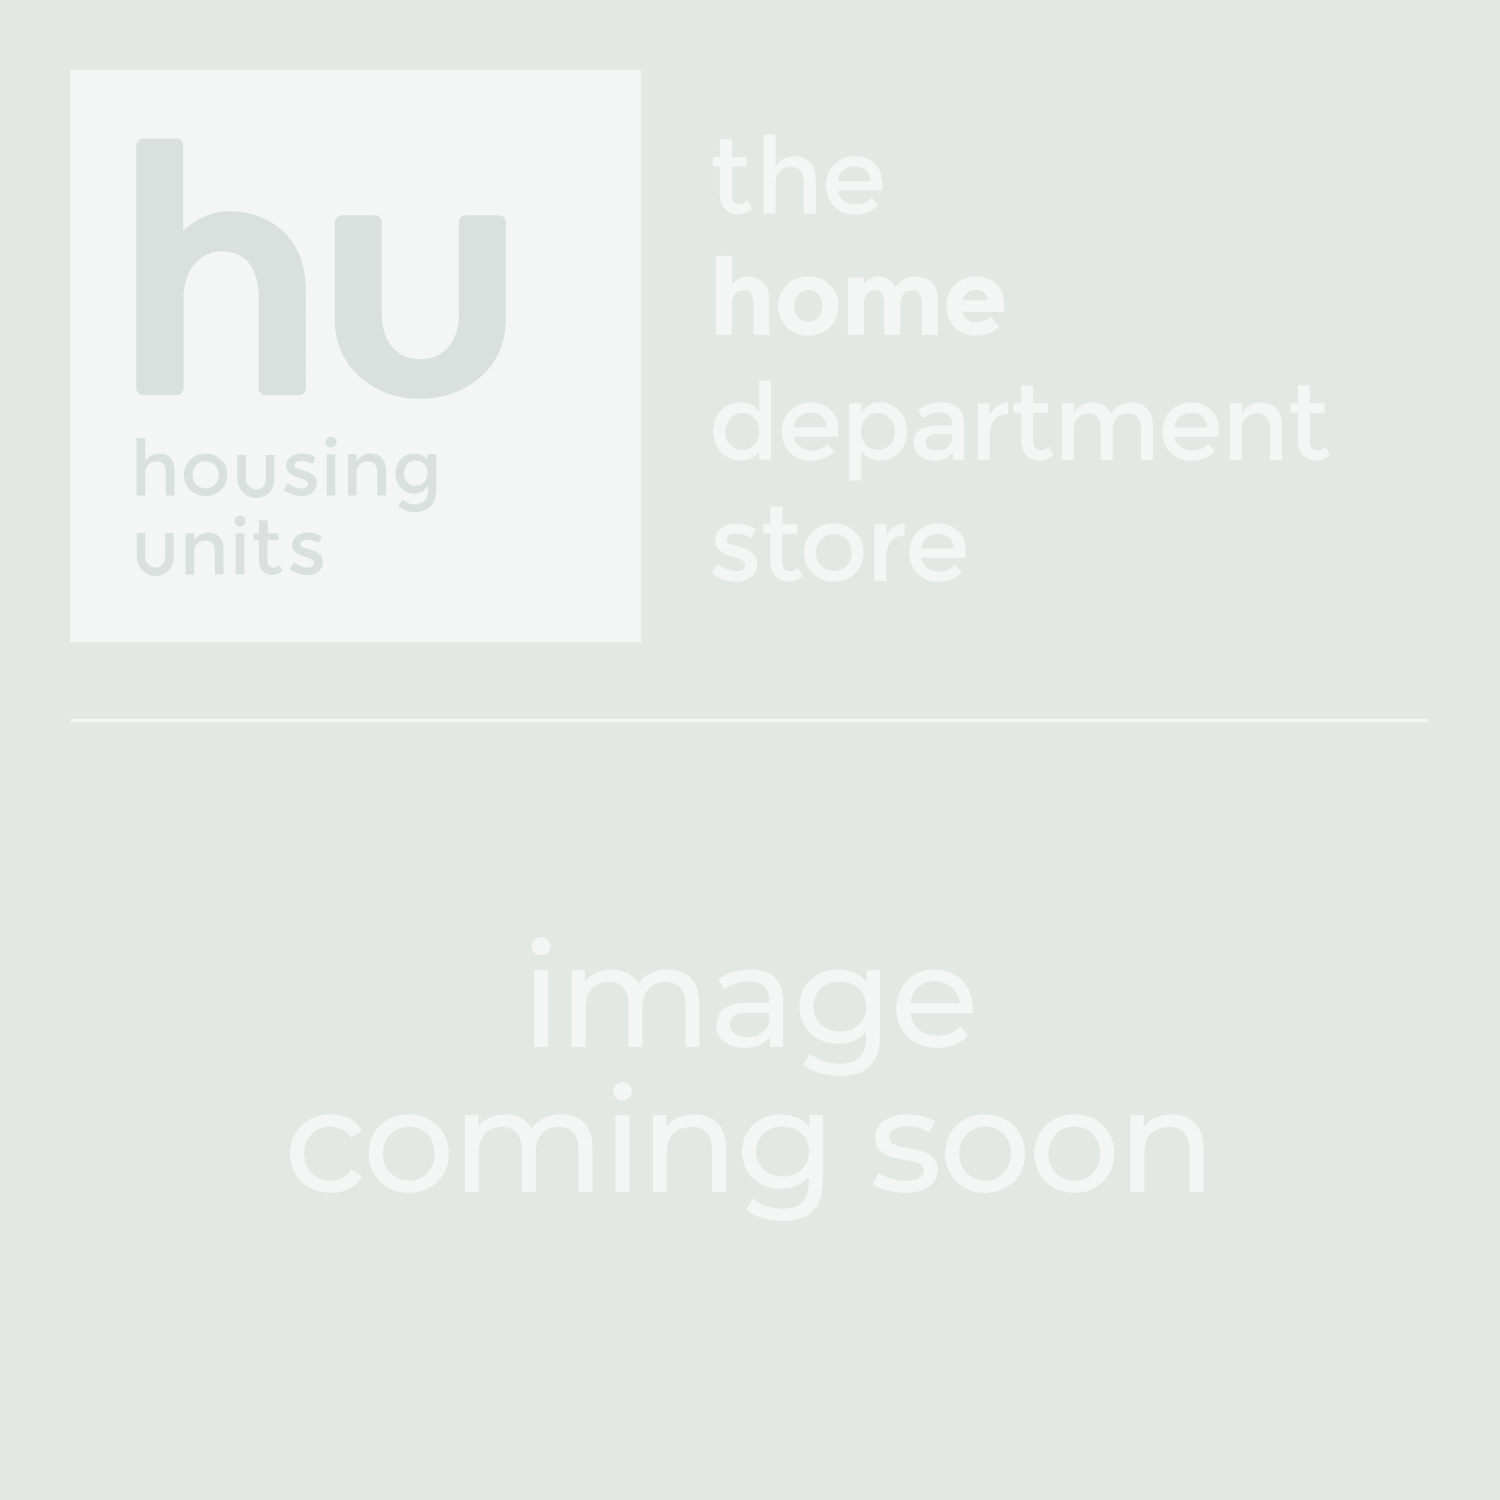 Colourful ostrich septet canvas